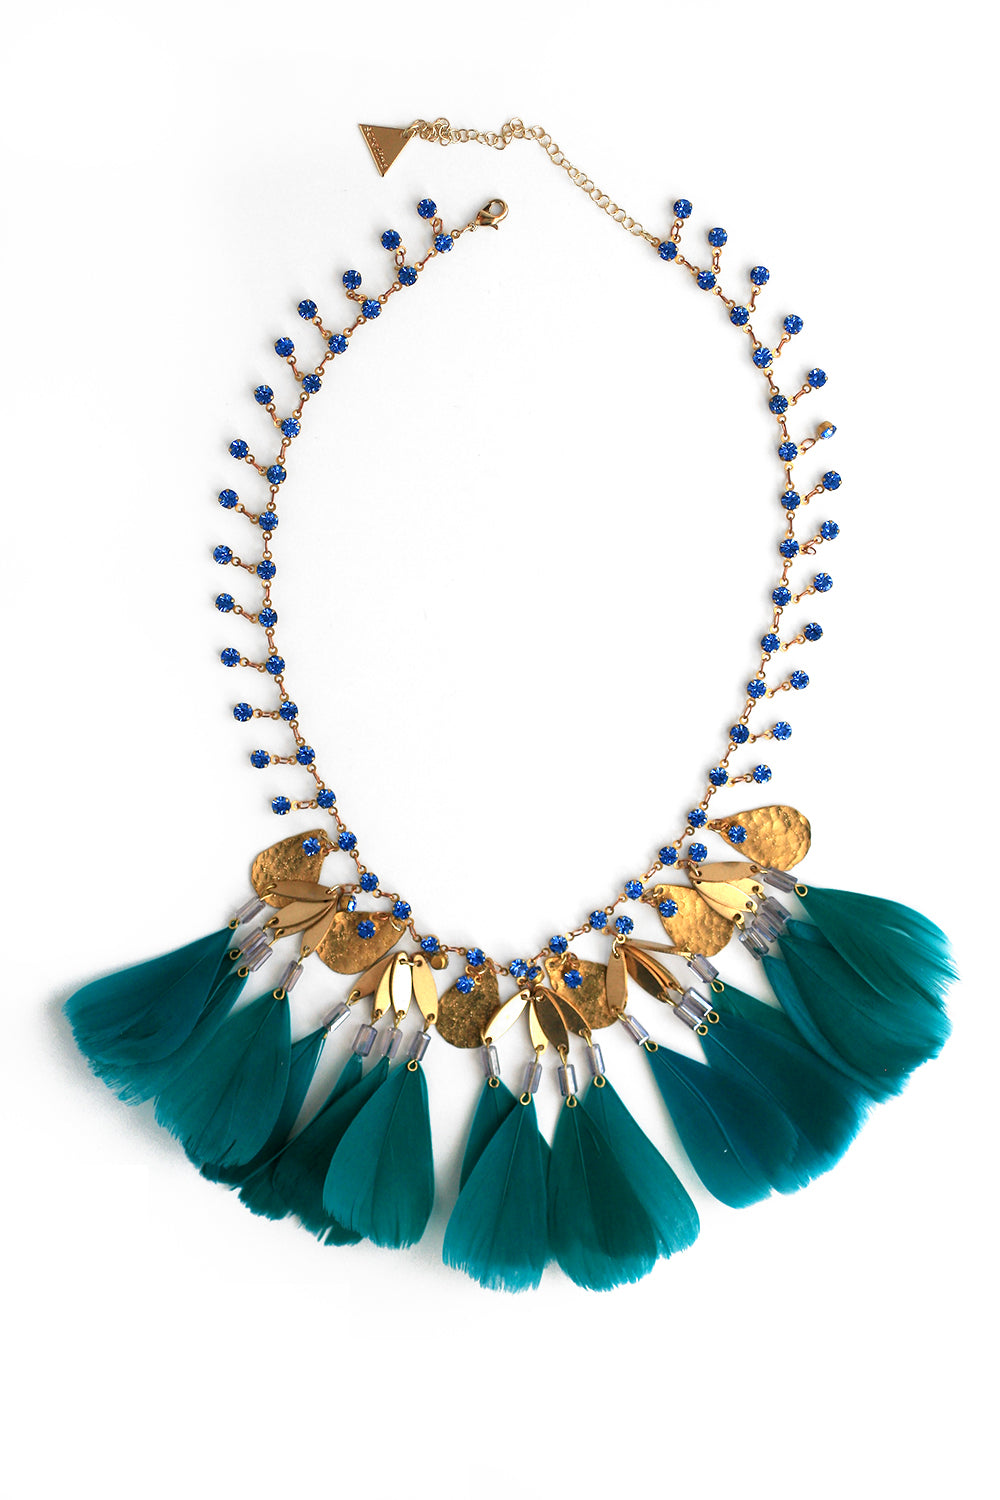 Crystal and Feather Bib Necklace - Teal